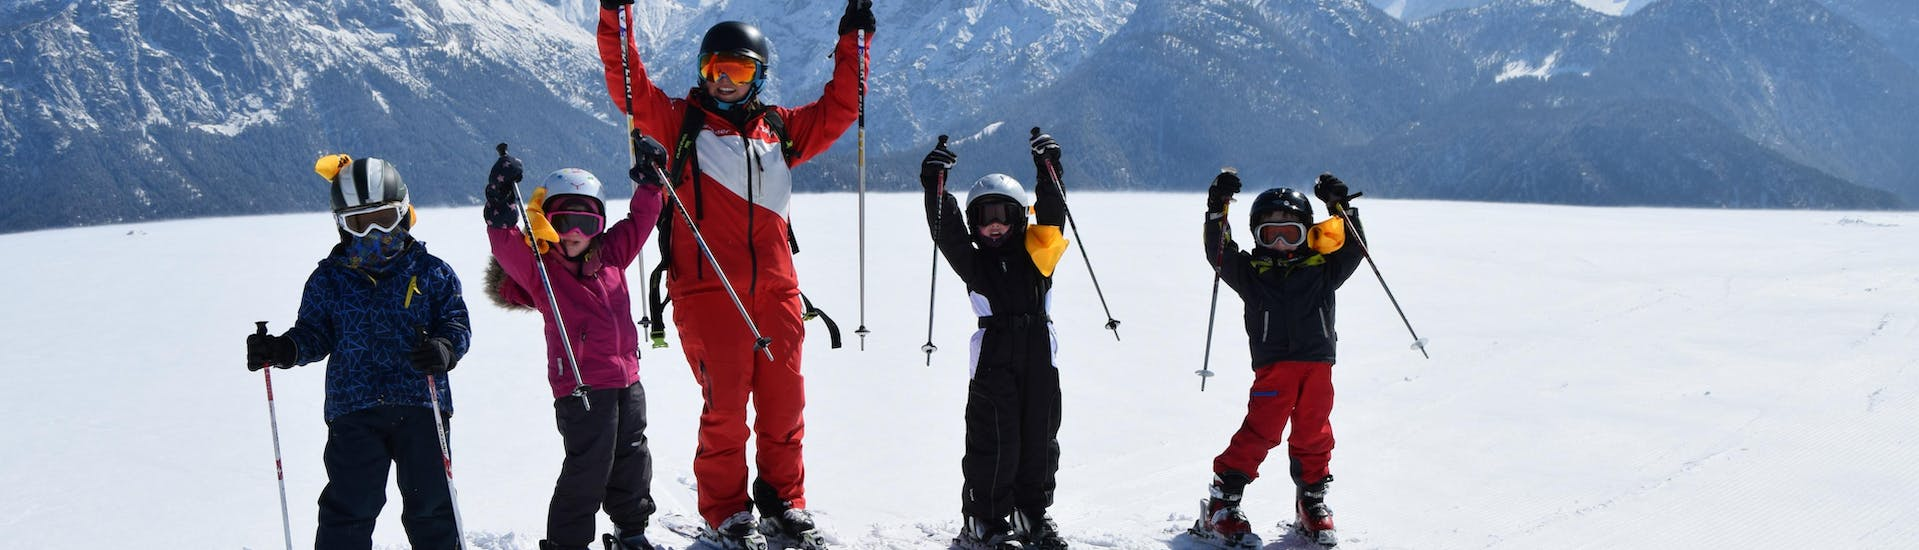 """Ski Lessons """"All-in-One"""" for Teens (11-15 y.) - Advanced with HERBST Skischule Lofer - Hero image"""